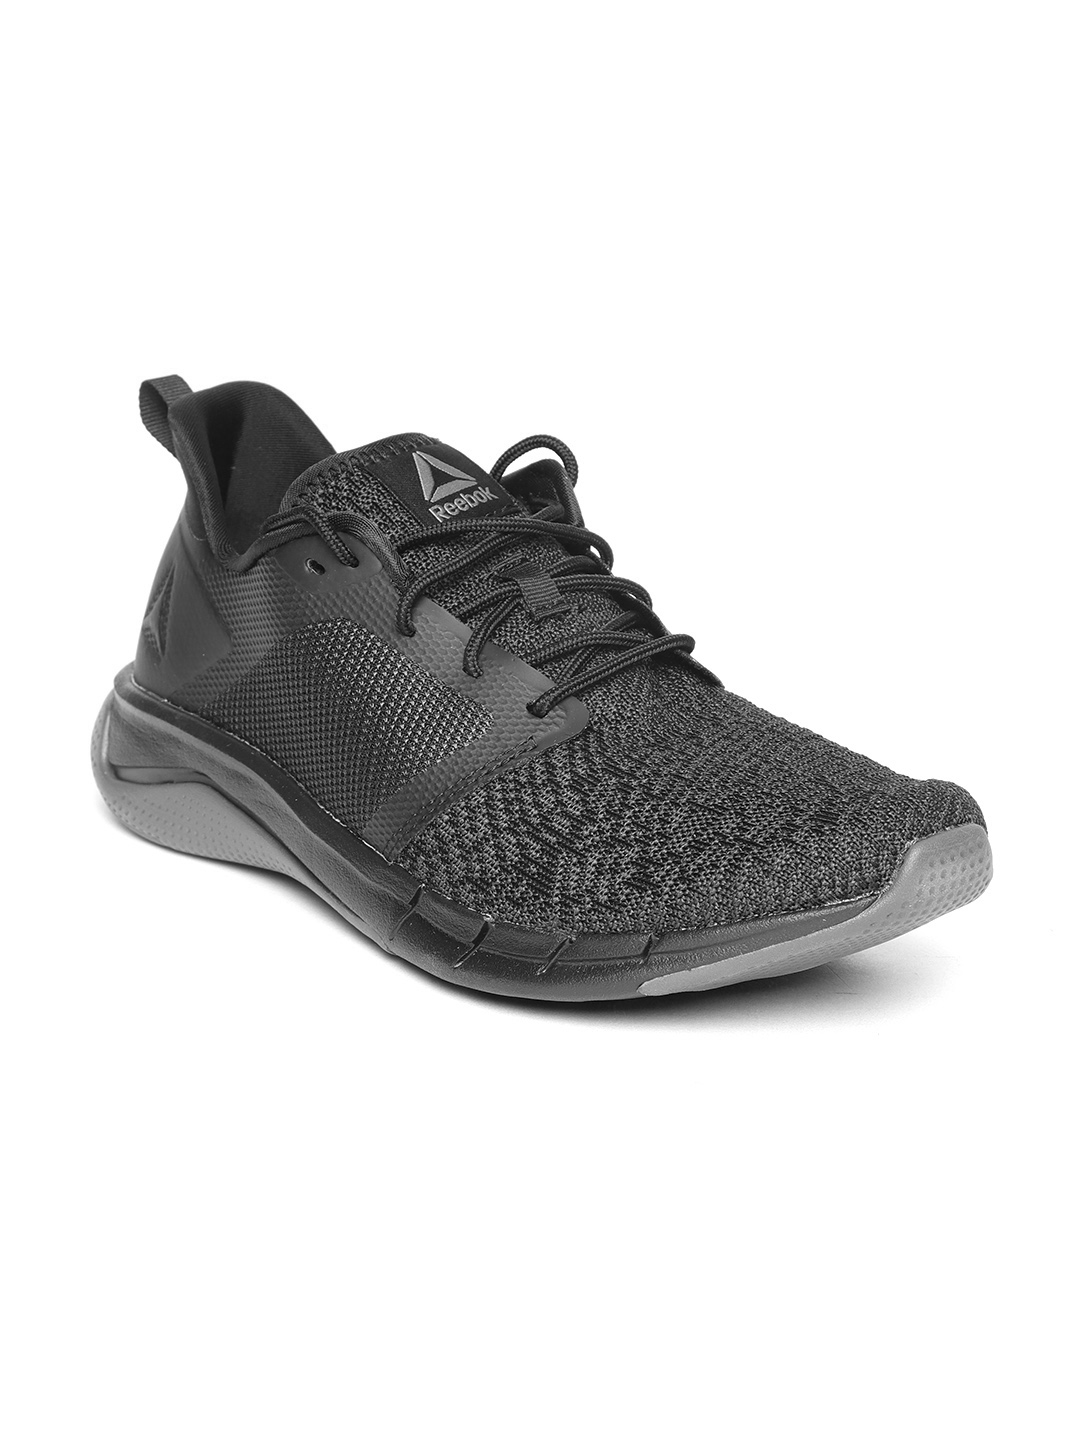 the best attitude a9730 43207 Reebok Men Black & Grey Print Run 3.0 Patterned Running Shoes